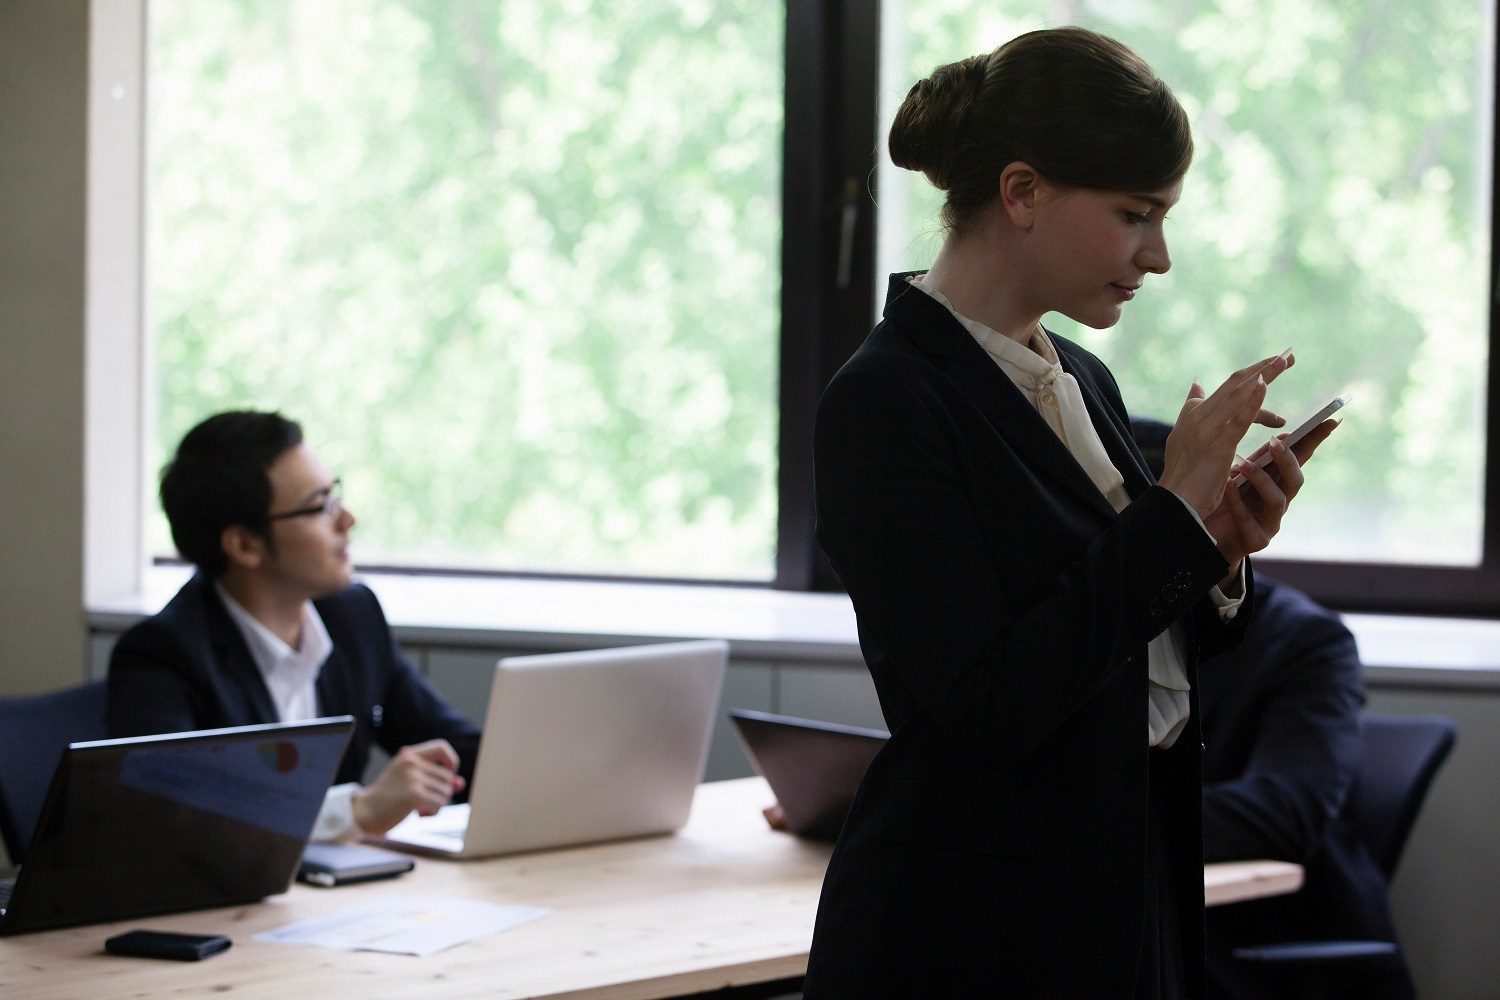 A woman using her phone at work with a man looking away in the background